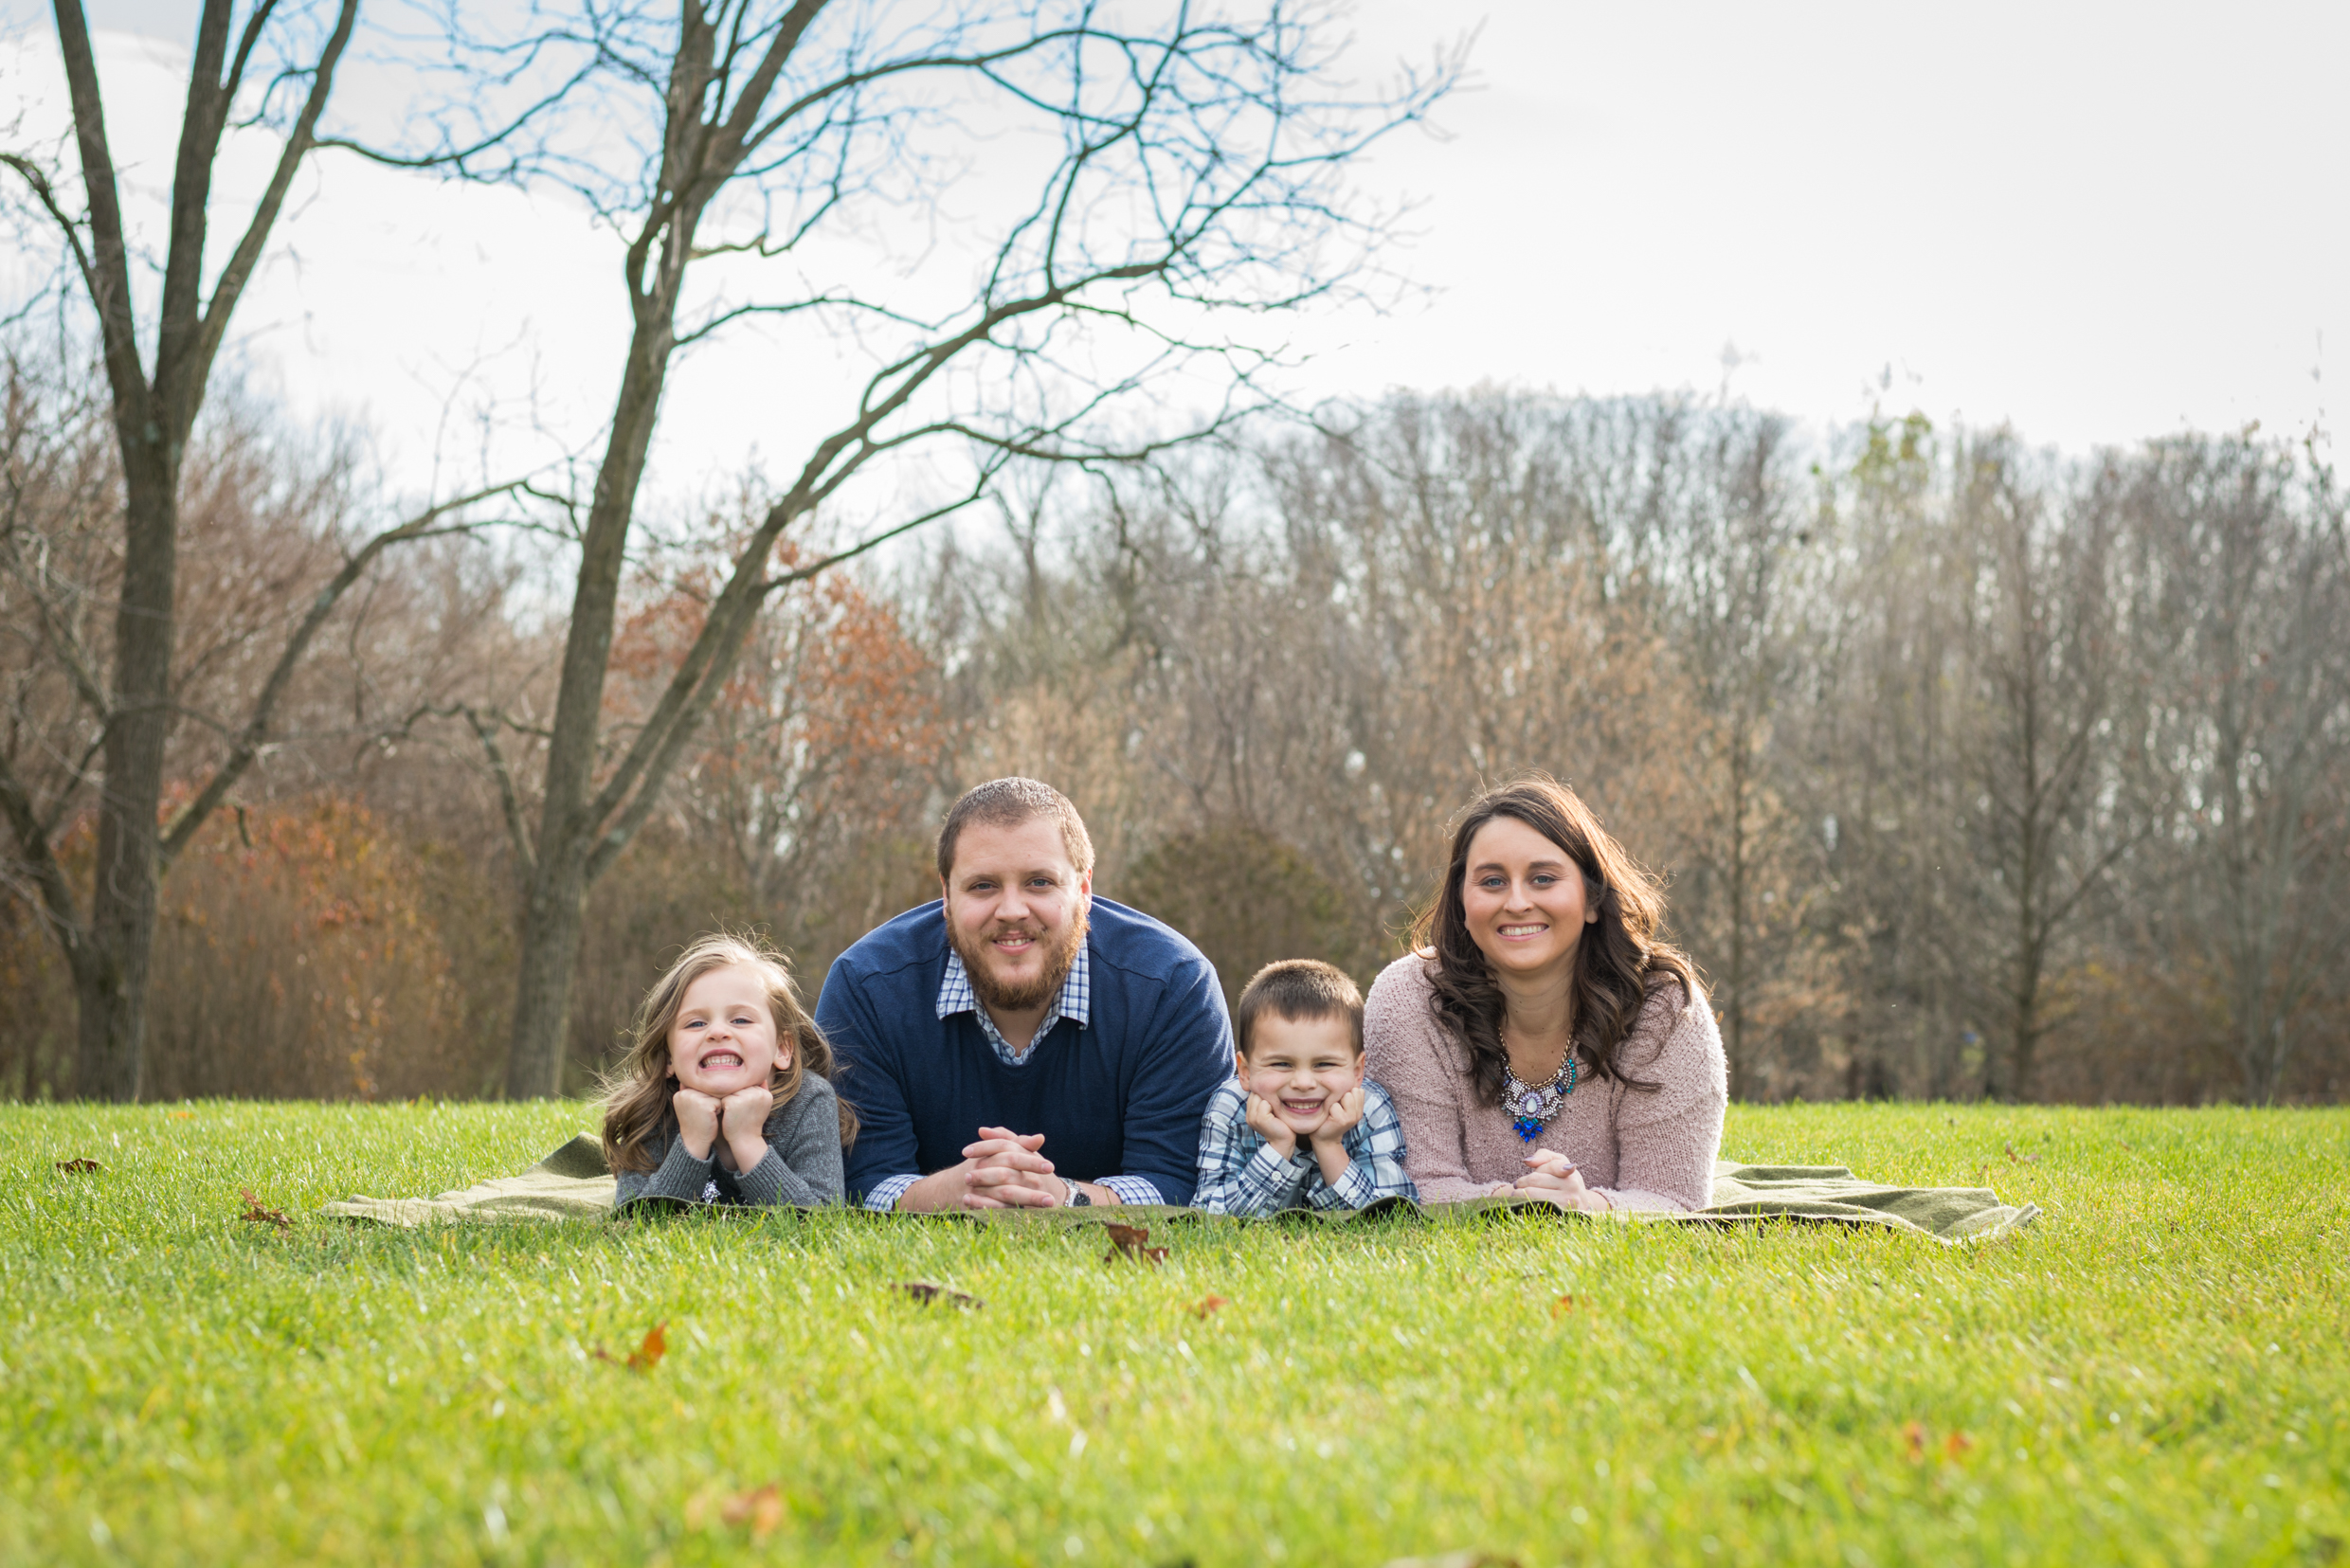 Family photos in the park-Carmel-Indiana